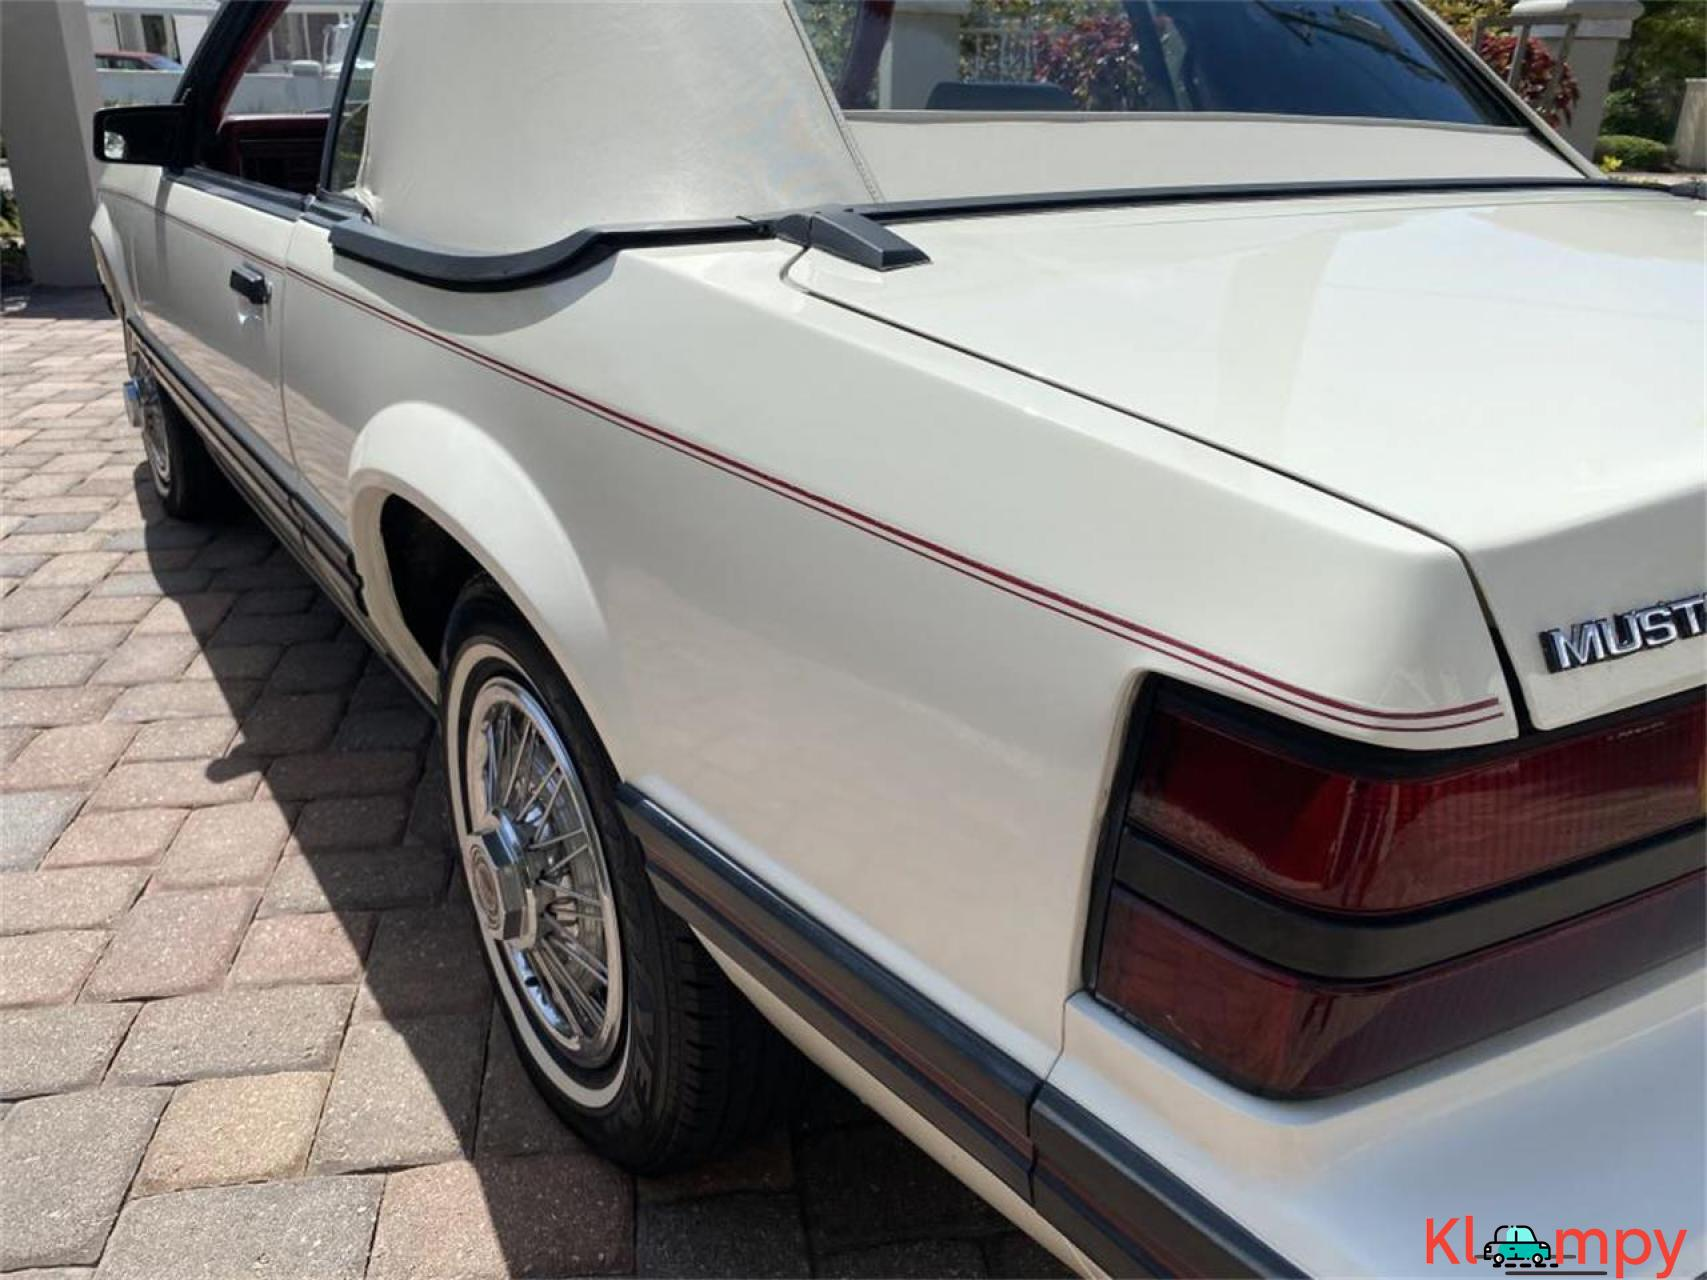 1983 Ford Mustang 3.8 LITRE V6 AUTO - 2/20